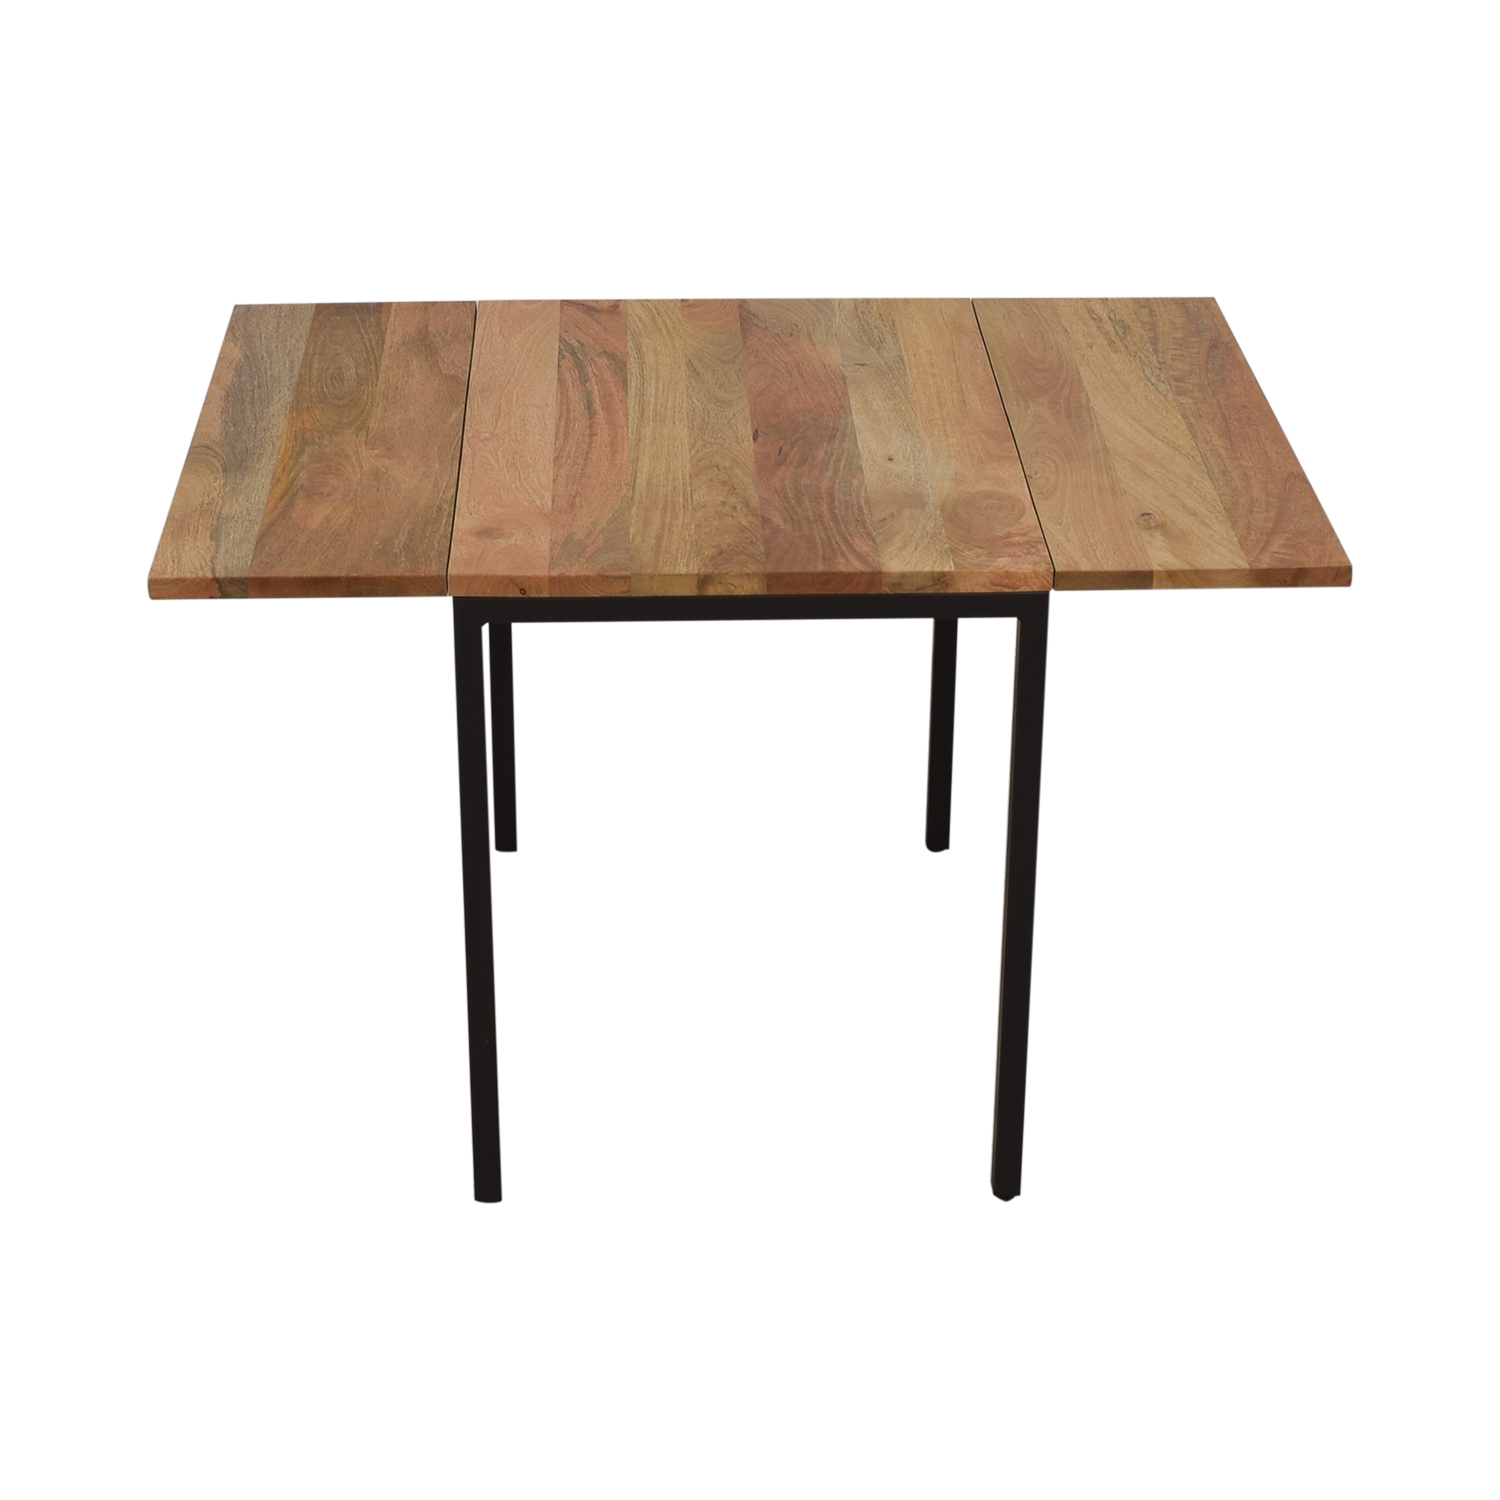 West Elm West Elm Box Frame Drop Leaf Expandable Table on sale